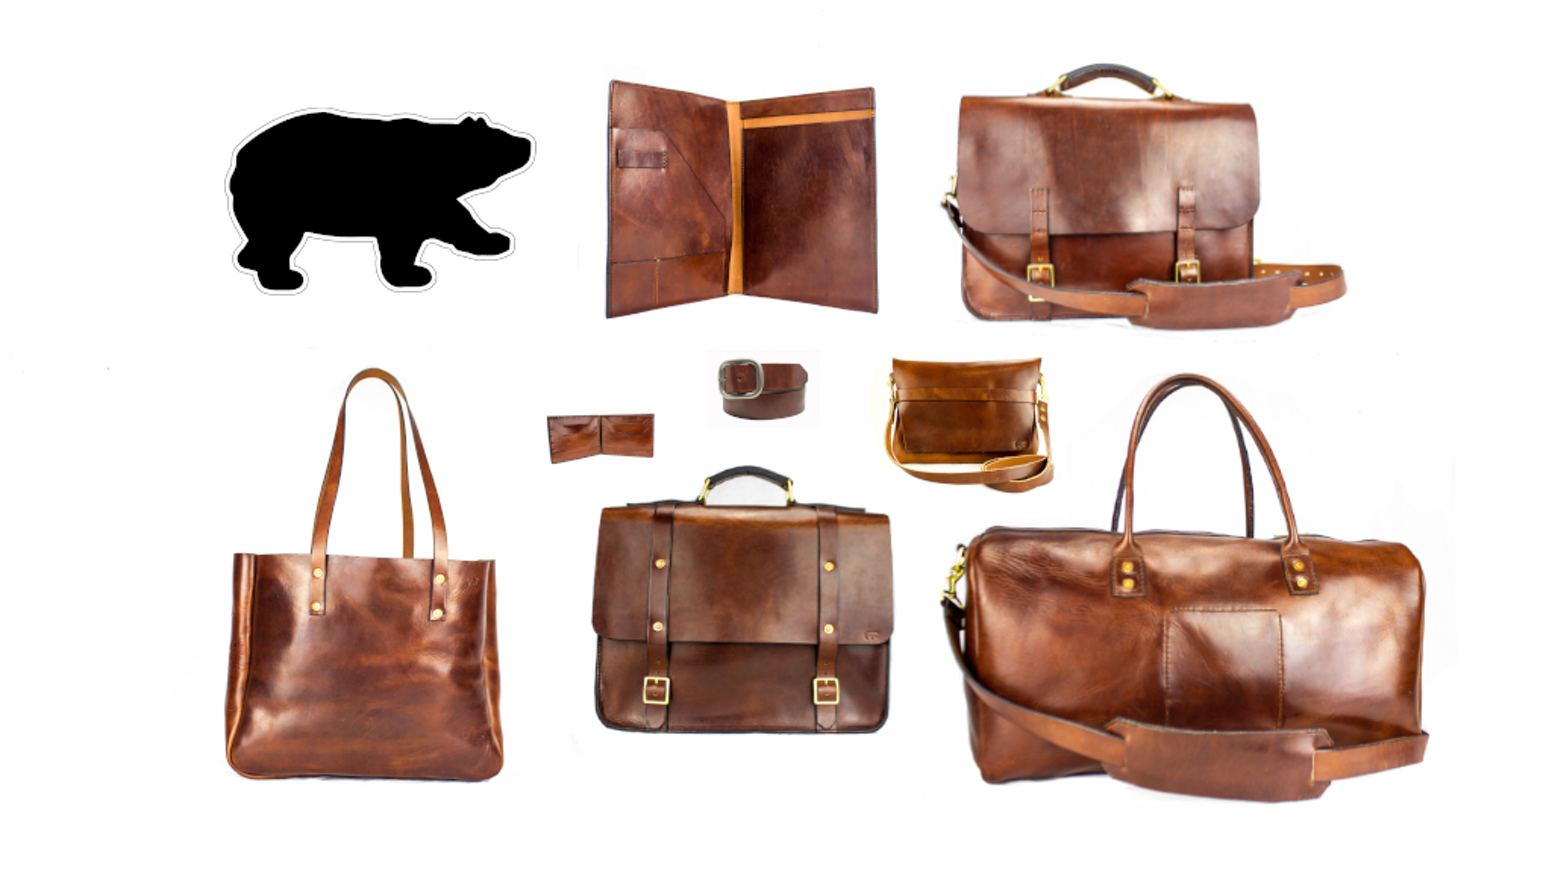 5a6fa9ca53f8 Hand Stitched Artisan Leather Bags Made in USA by Black Bear by Black Bear  Leather — Kickstarter